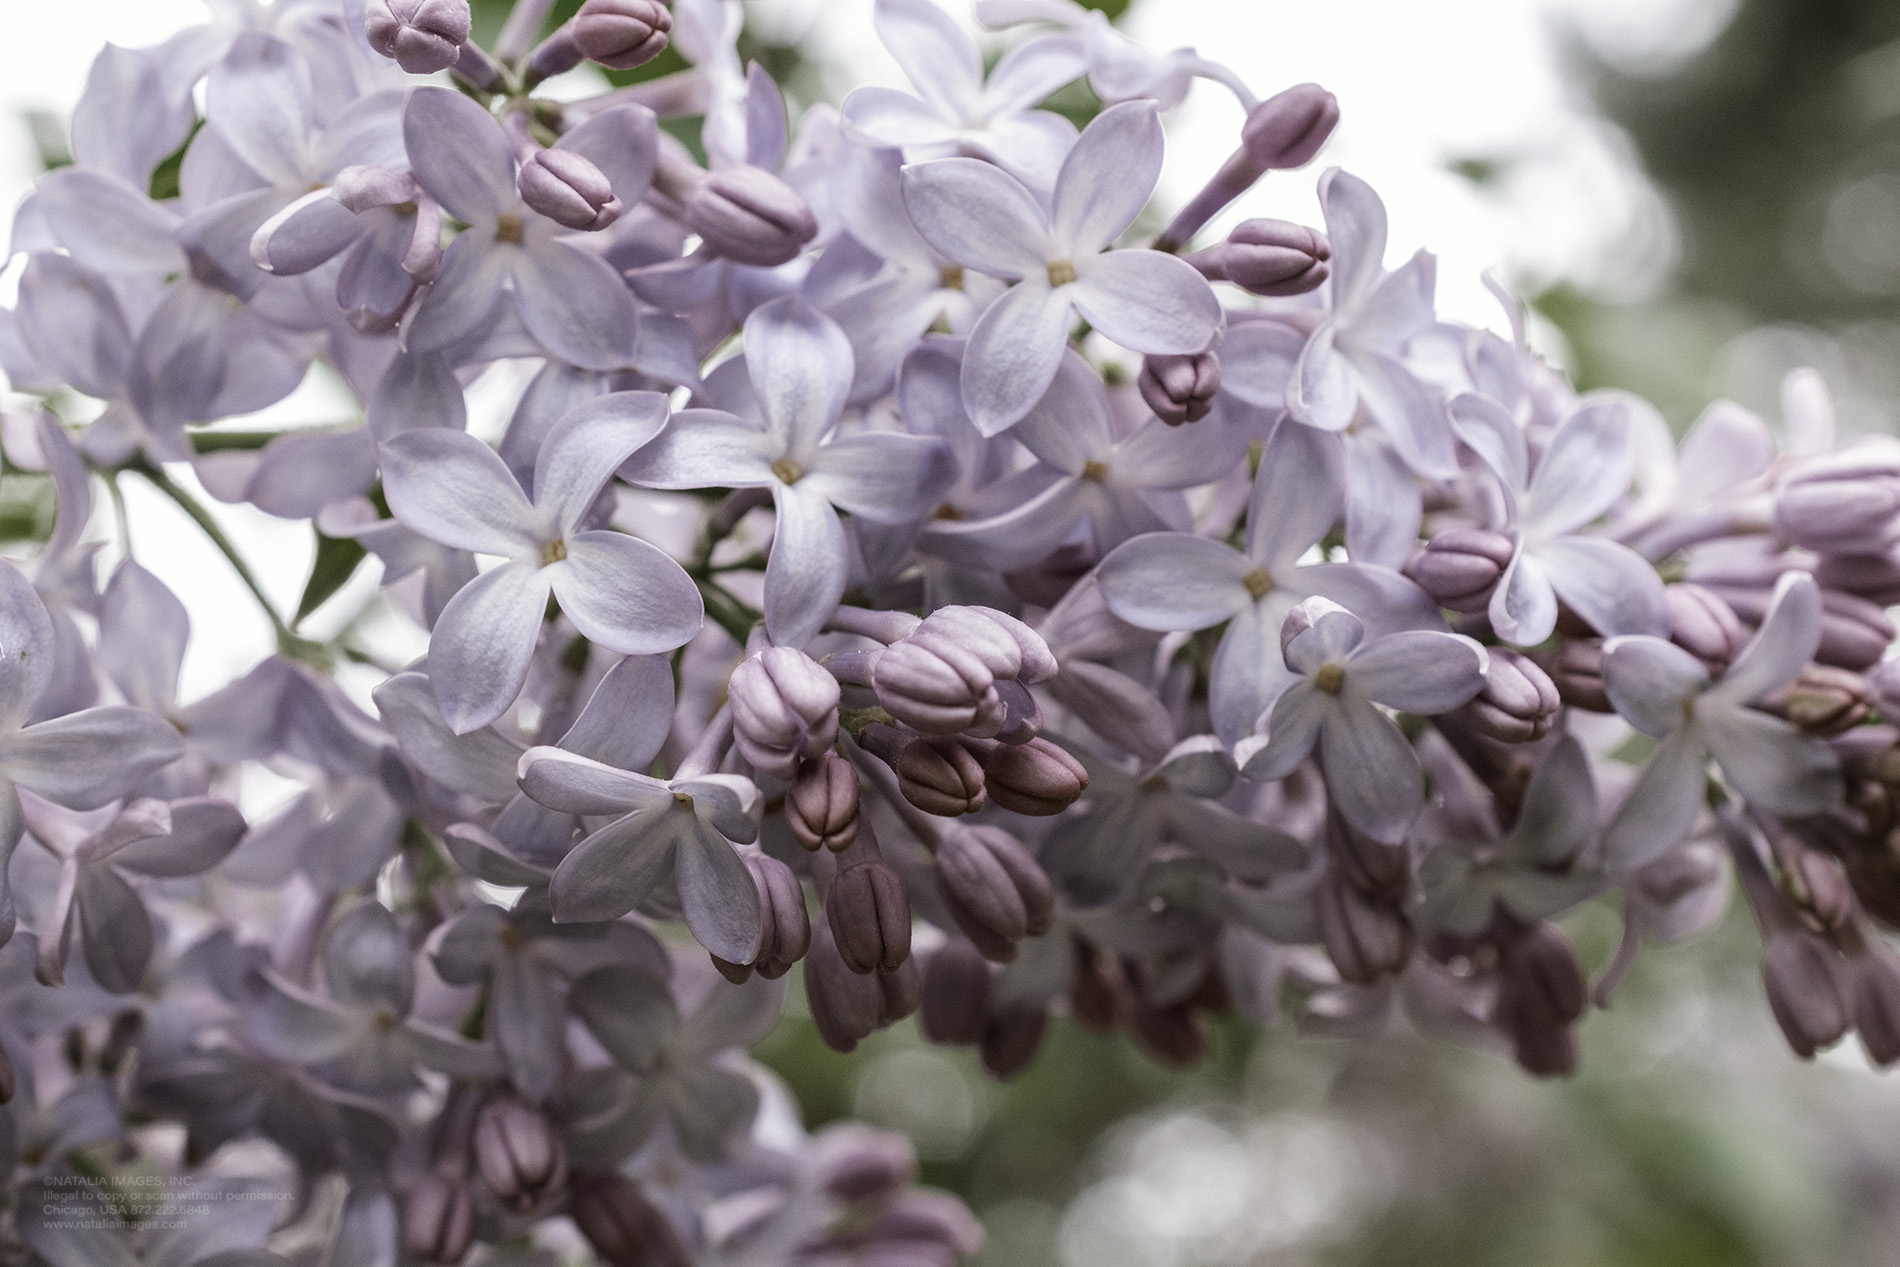 Natalia Images - Common Lilac 3.jpg